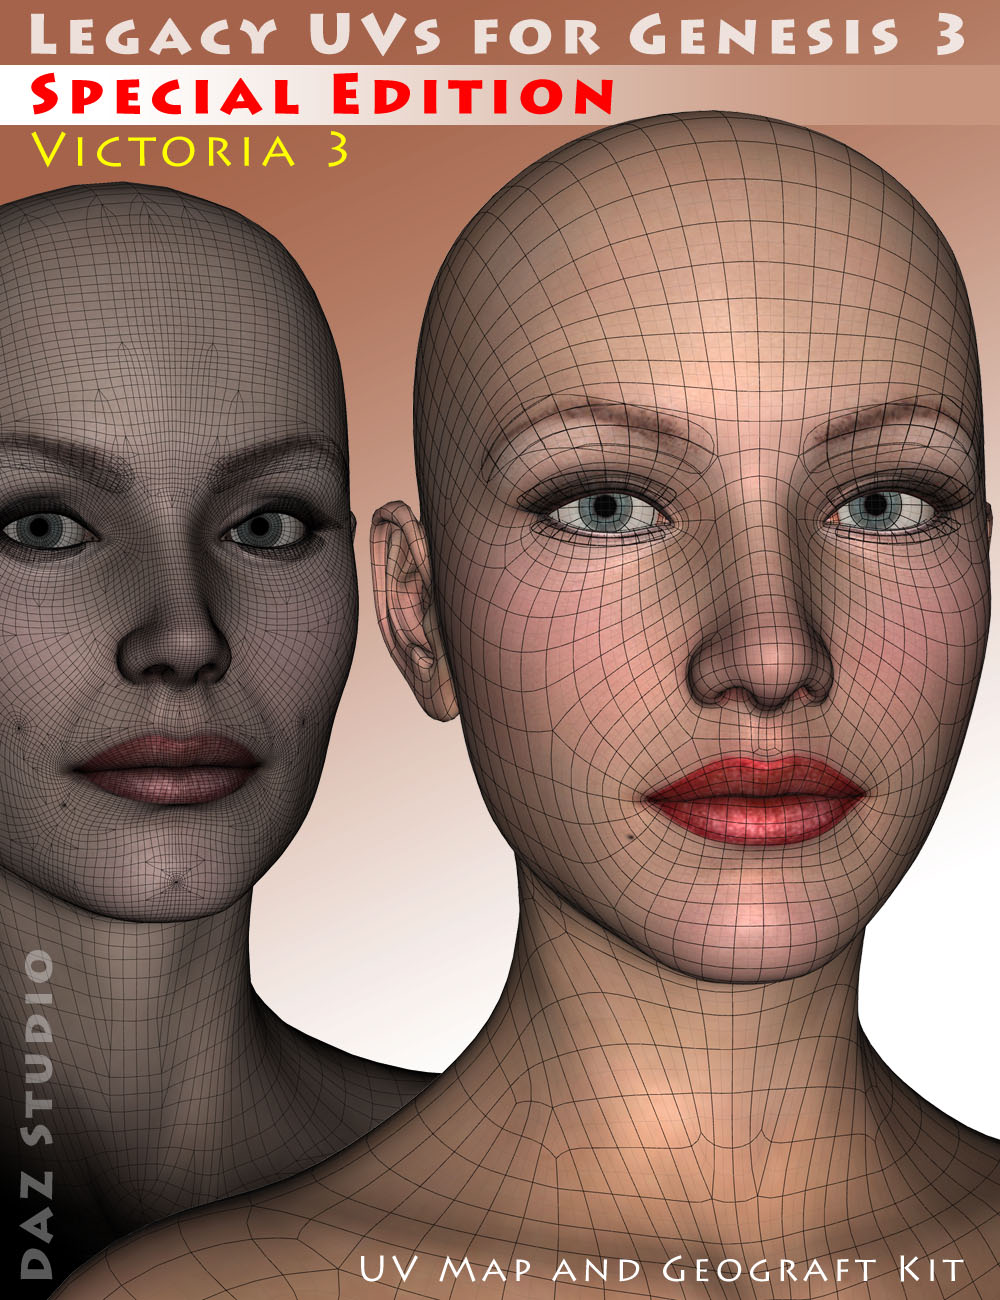 Legacy UVs for Genesis 3: Special Edition - Victoria 3 by: Cayman Studios, 3D Models by Daz 3D